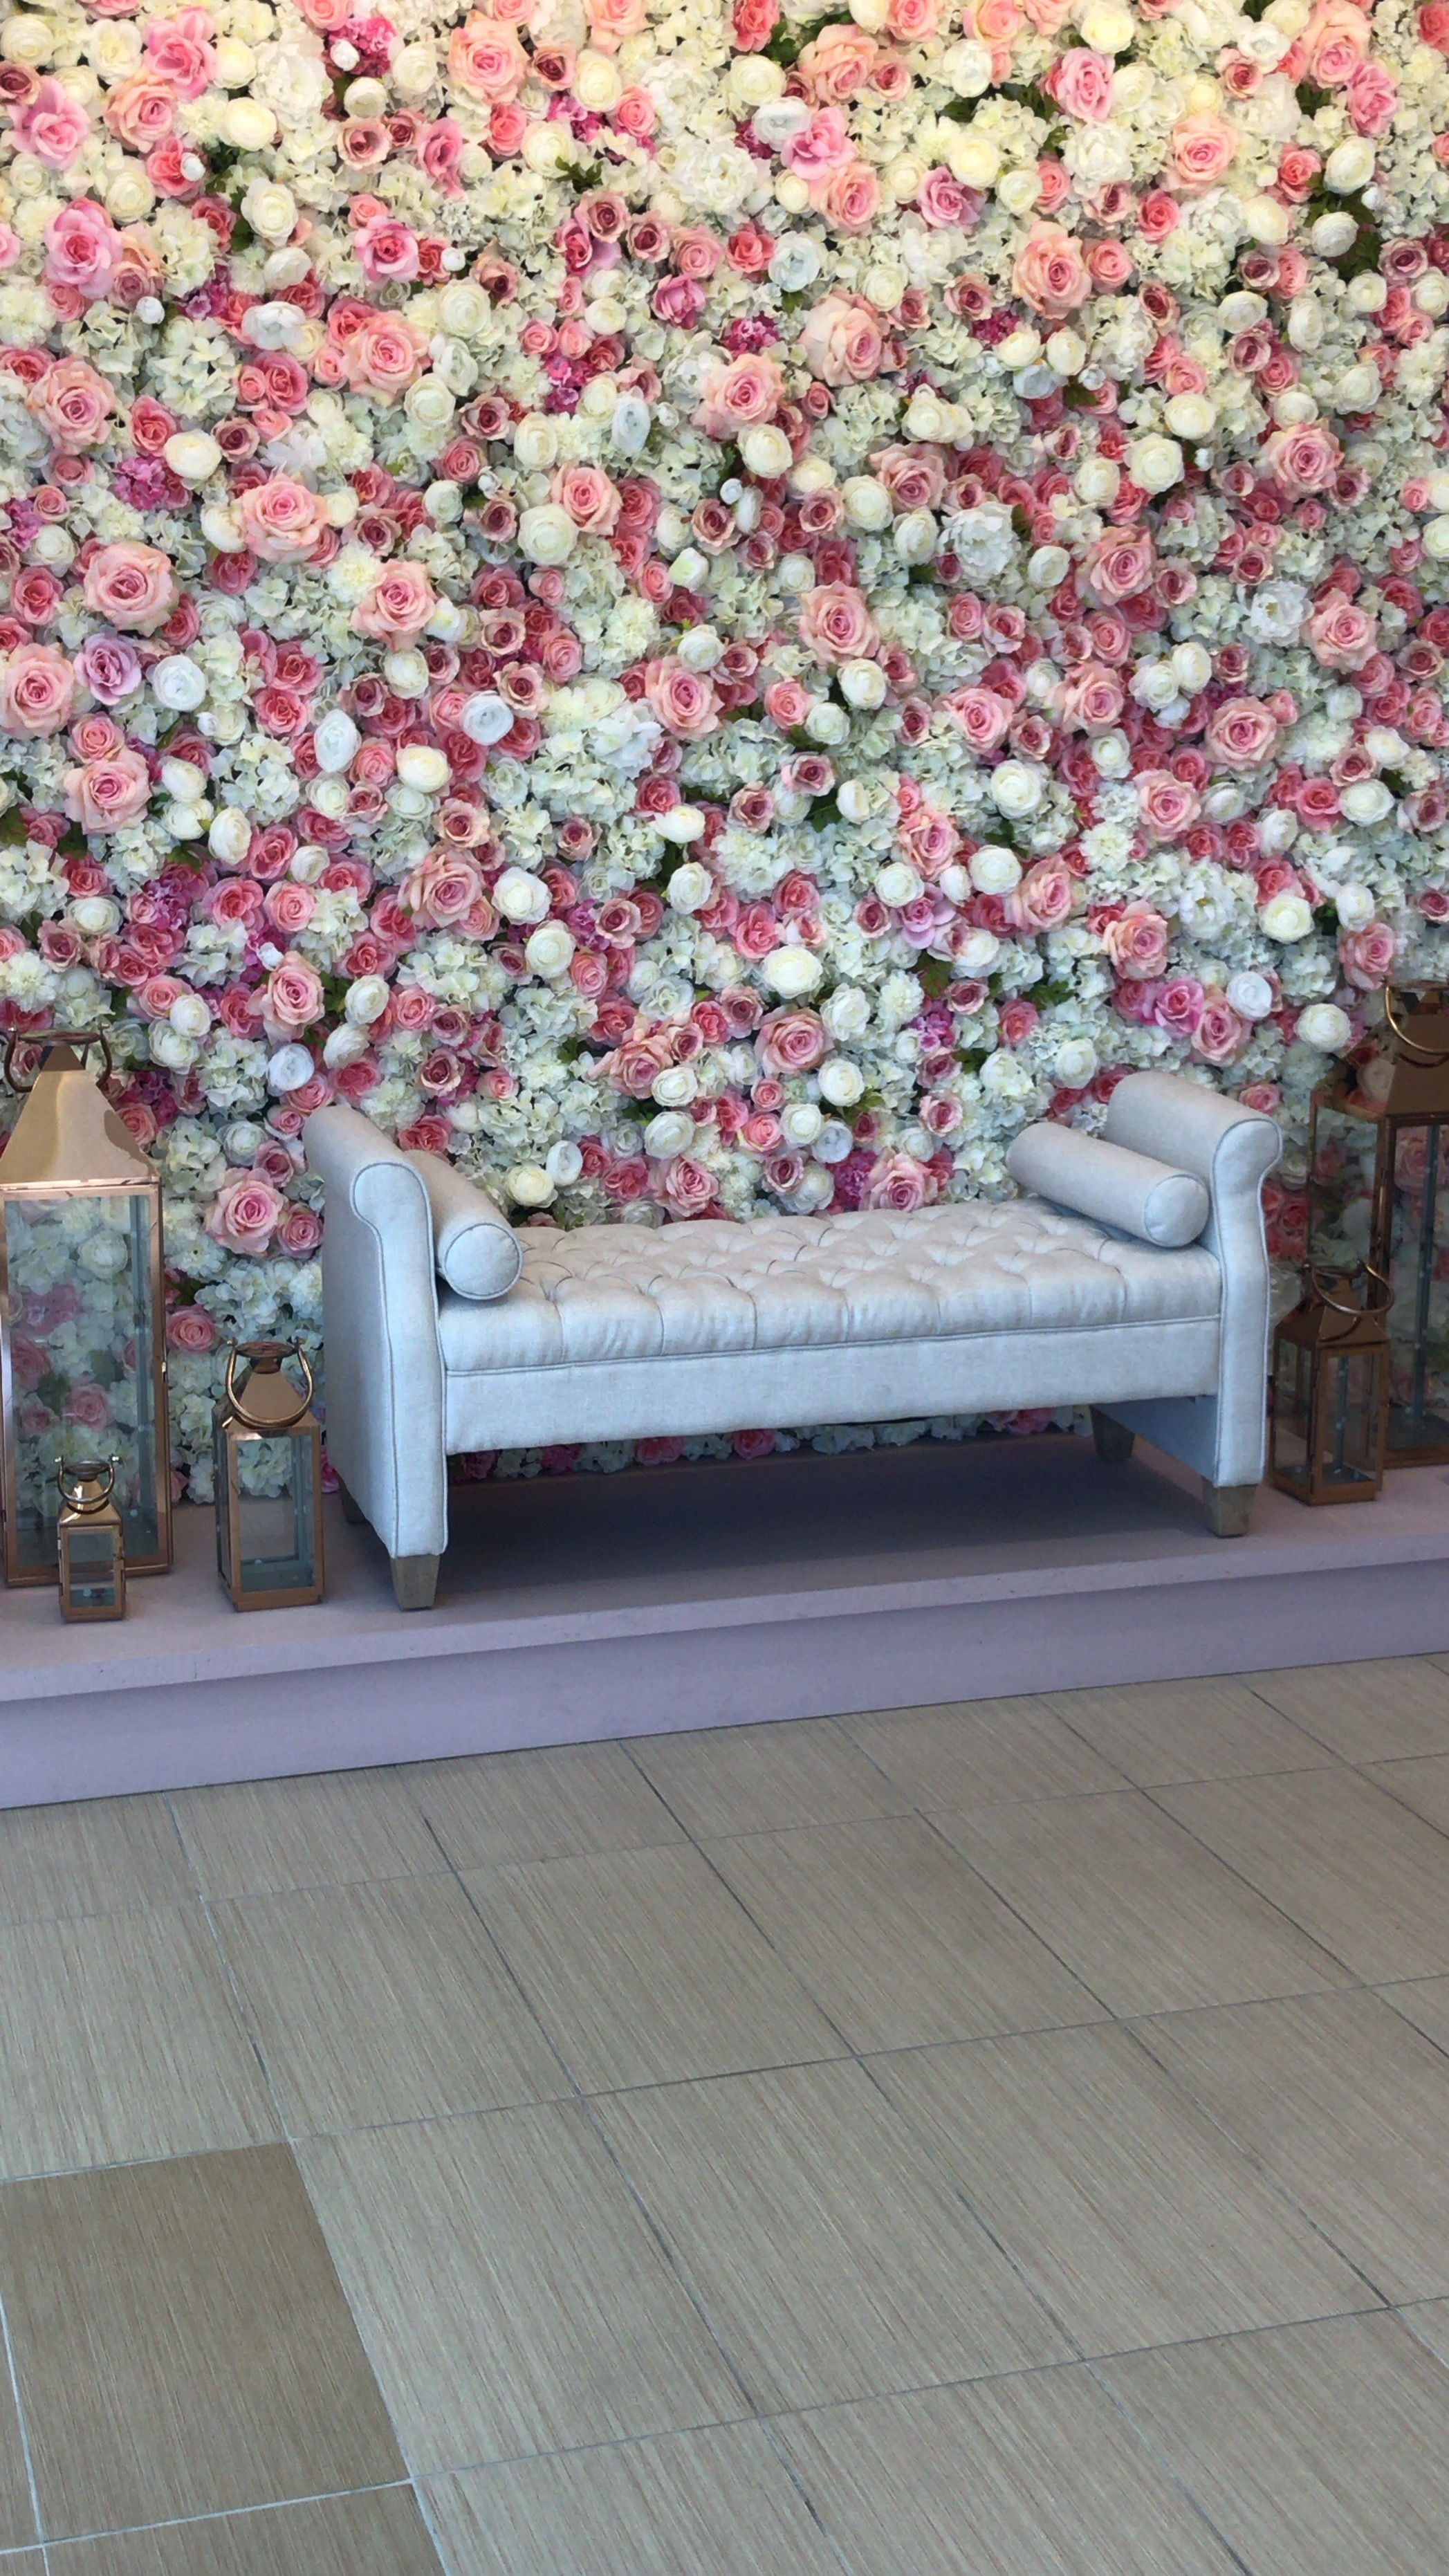 A floral wall makes for s great instagram moment at Javier Valentino.